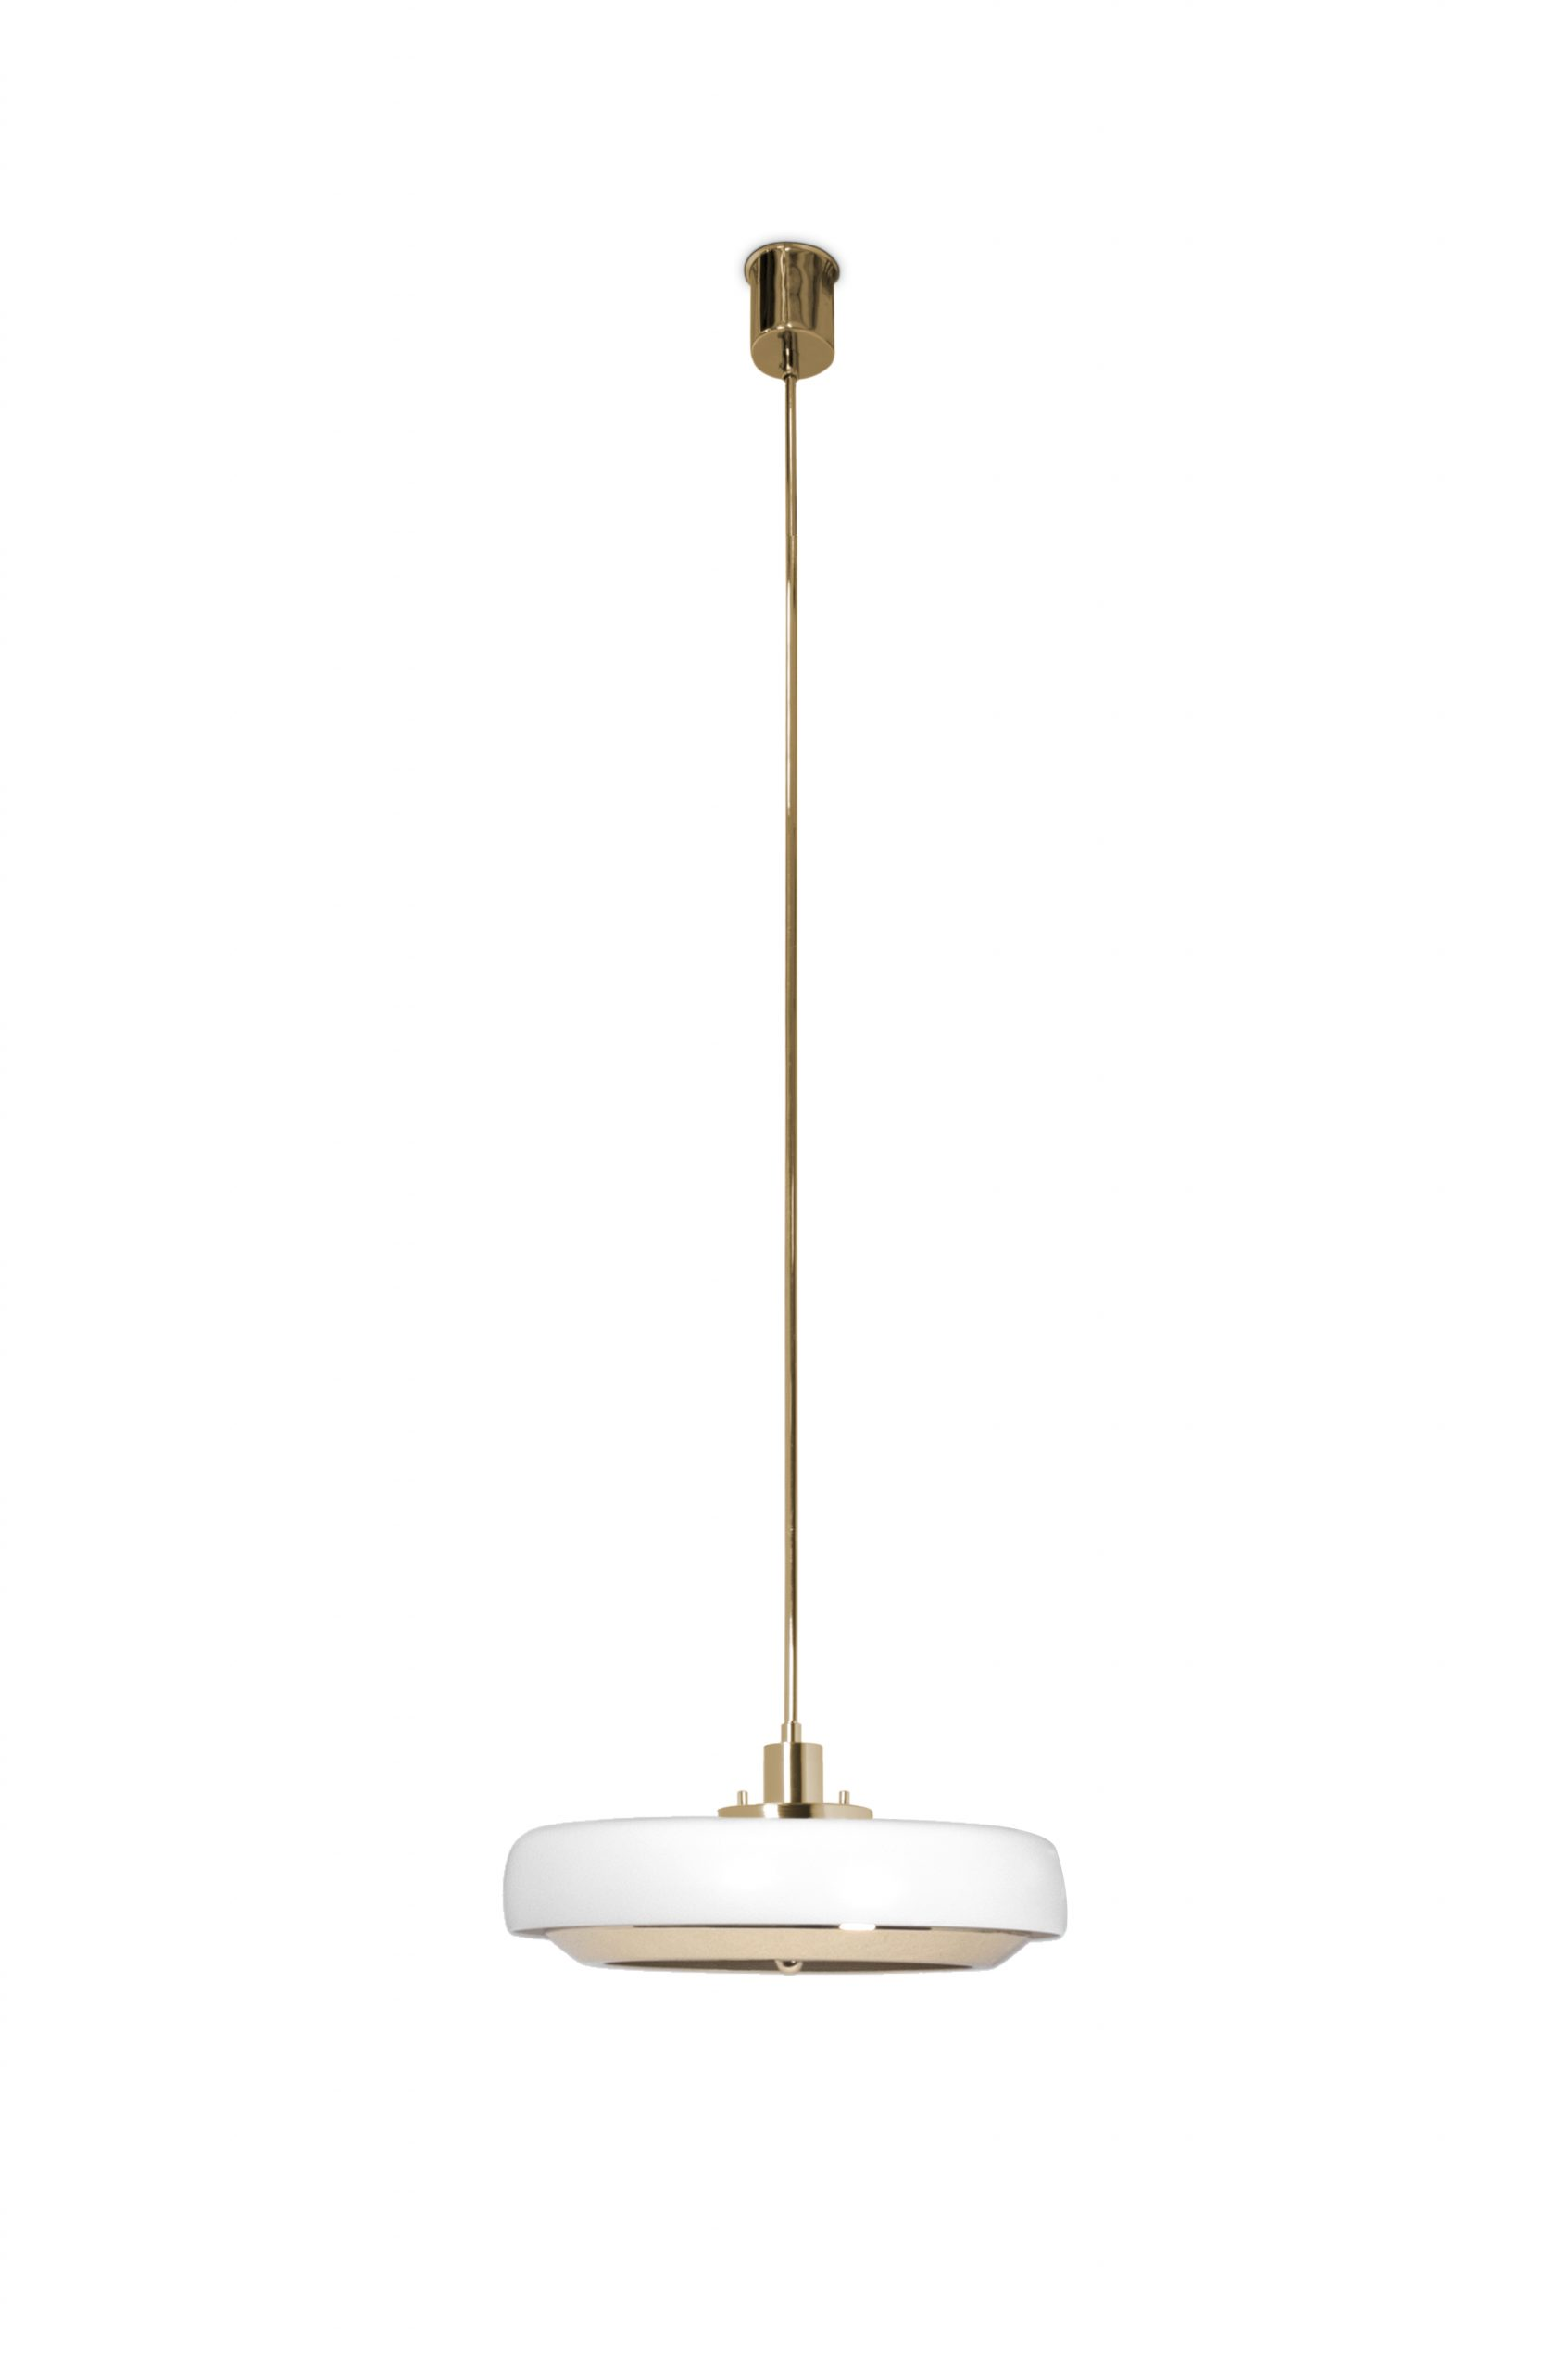 EXCLUSIVE: The New Mid Century Pendant Lamp Everyone Will Talk About! pendant lamp EXCLUSIVE: The New Mid Century Pendant Lamp Everyone Will Talk About! carter scaled